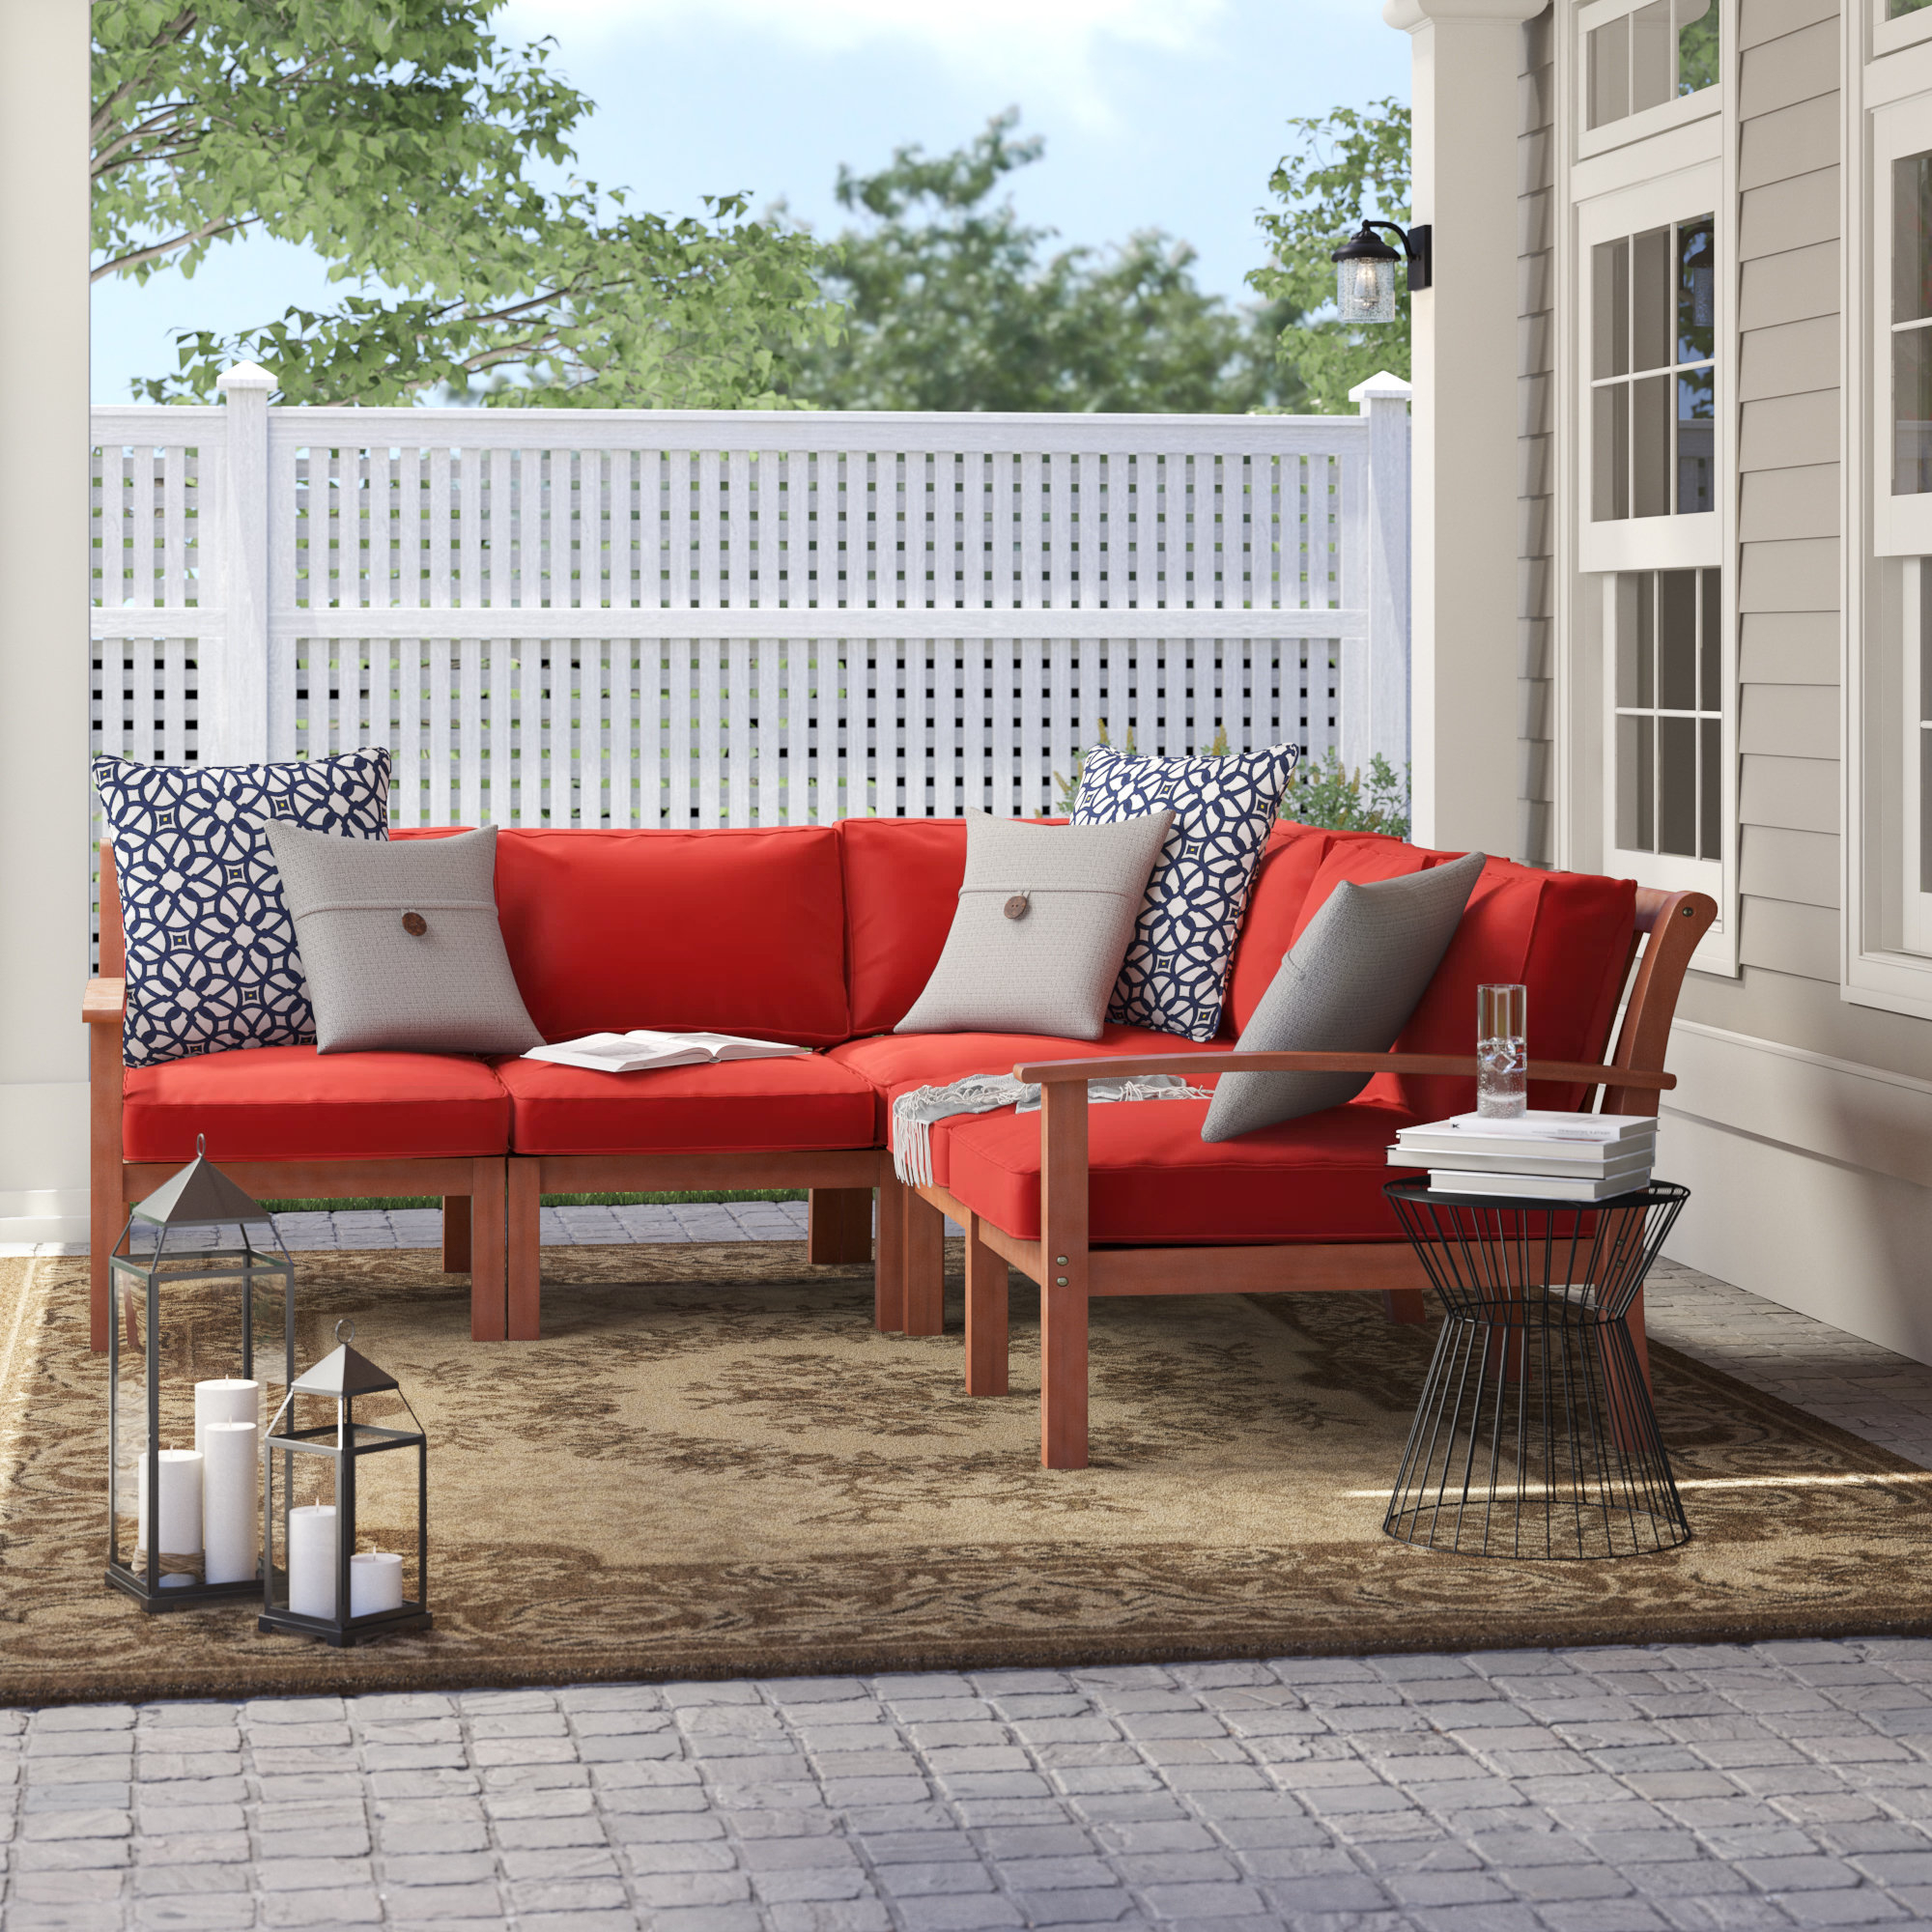 Current Rossi Patio Sectional With Cushions With Regard To Antonia Teak Patio Sectionals With Cushions (View 14 of 25)